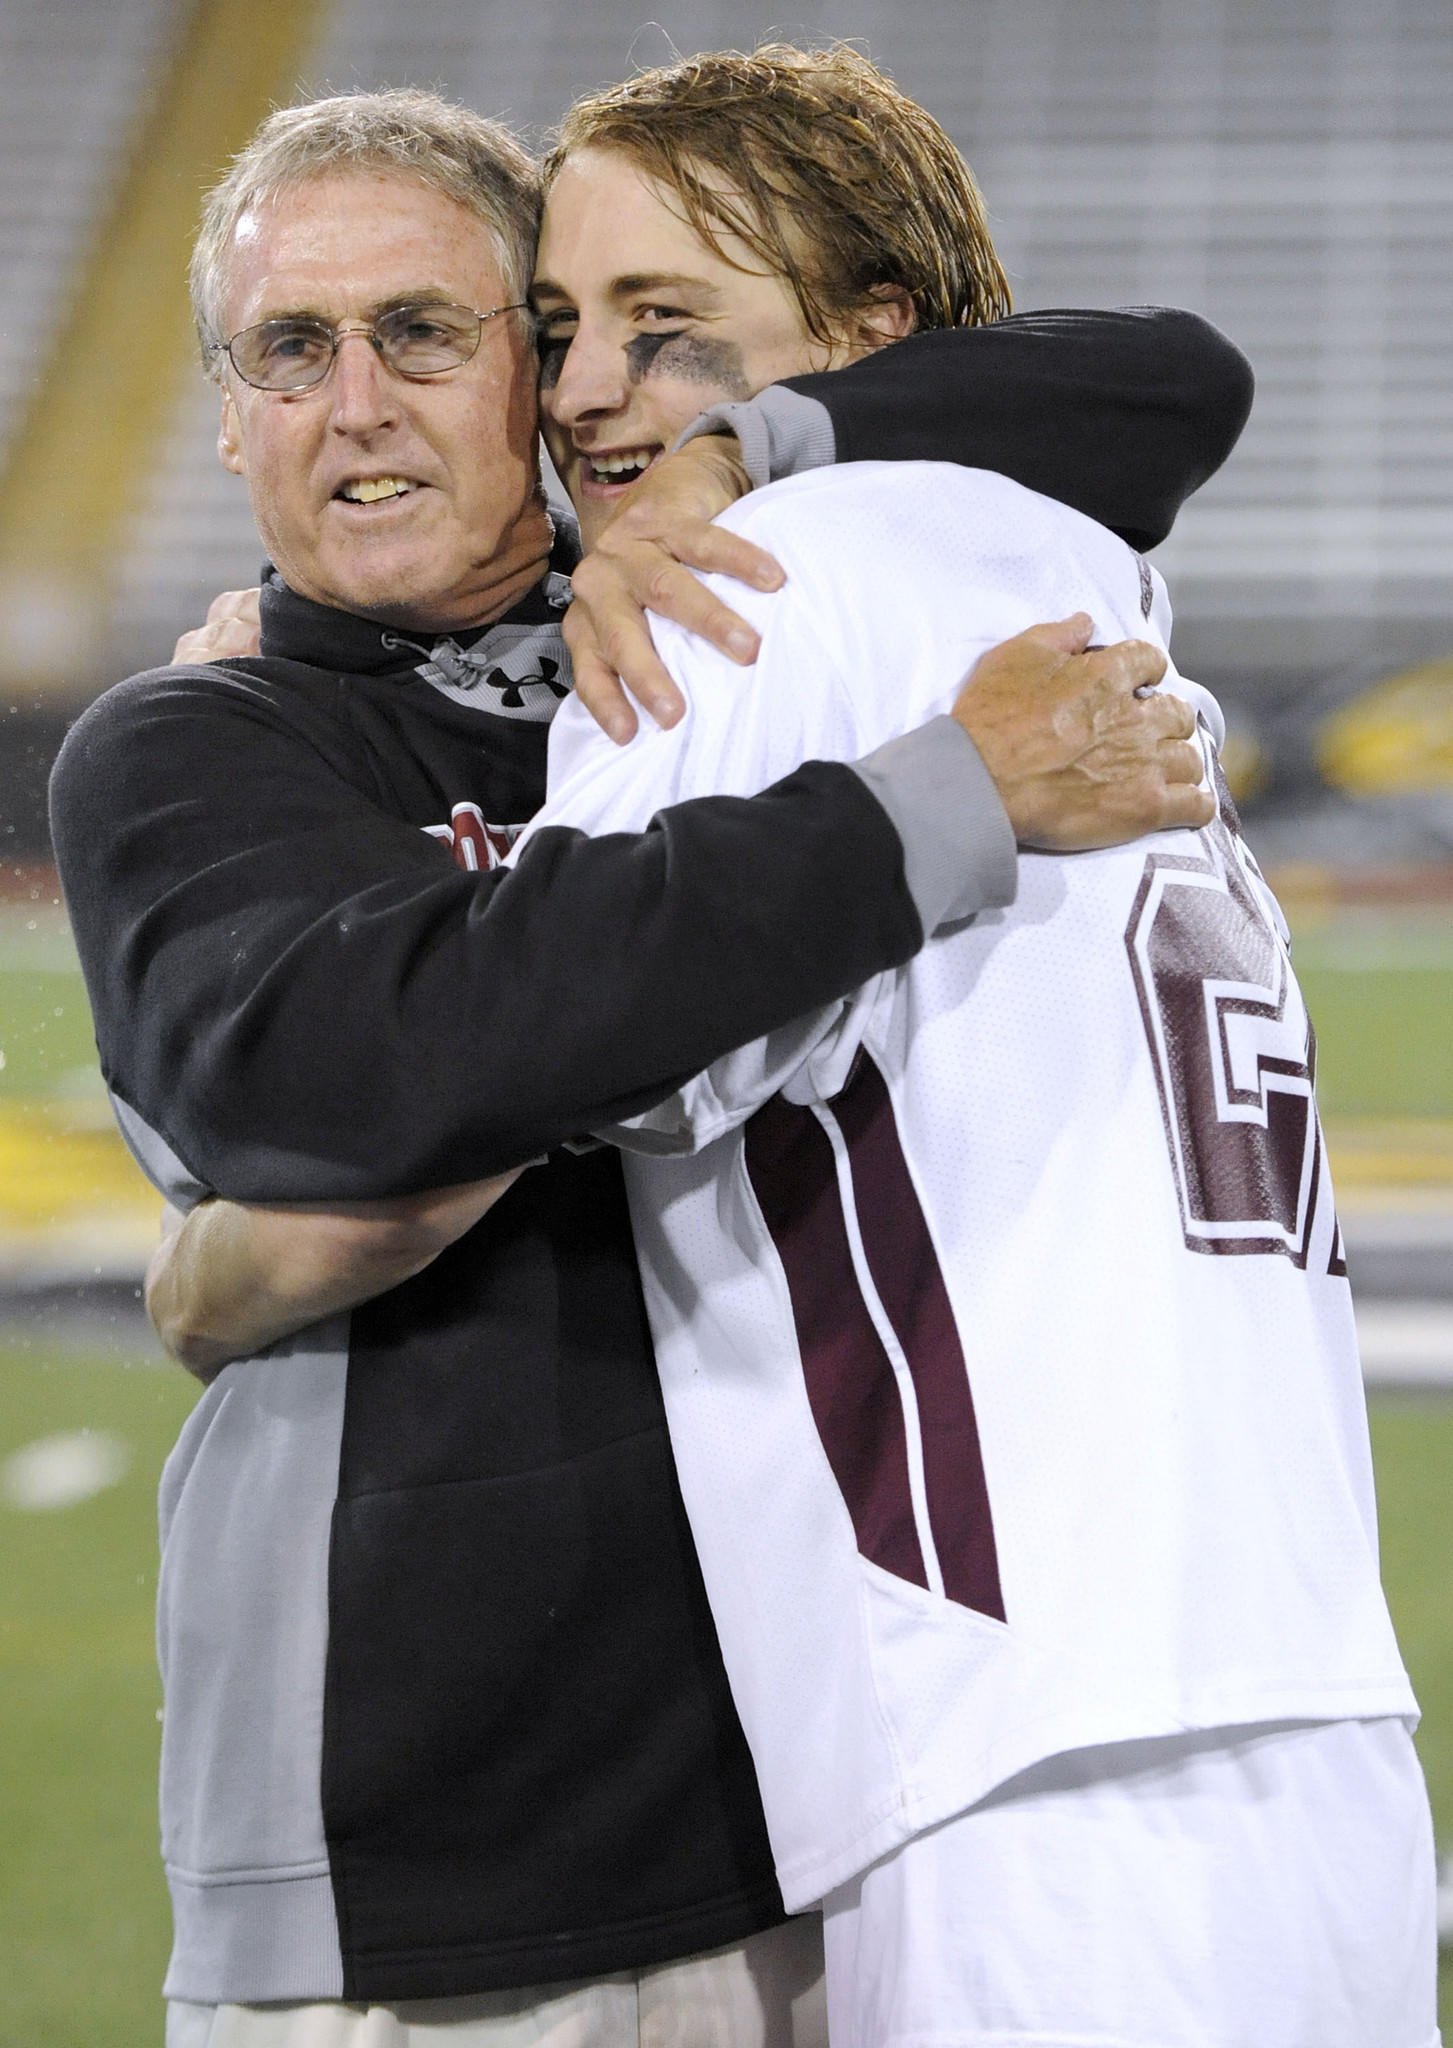 Boys' Latin lacrosse coach Bob Shriver, left, and senior attackman Colin Chell celebrate their 17-11 win against St. Paul's in the MIAA A Conference lacrosse championship Friday, May 15, 2014 in Towson.